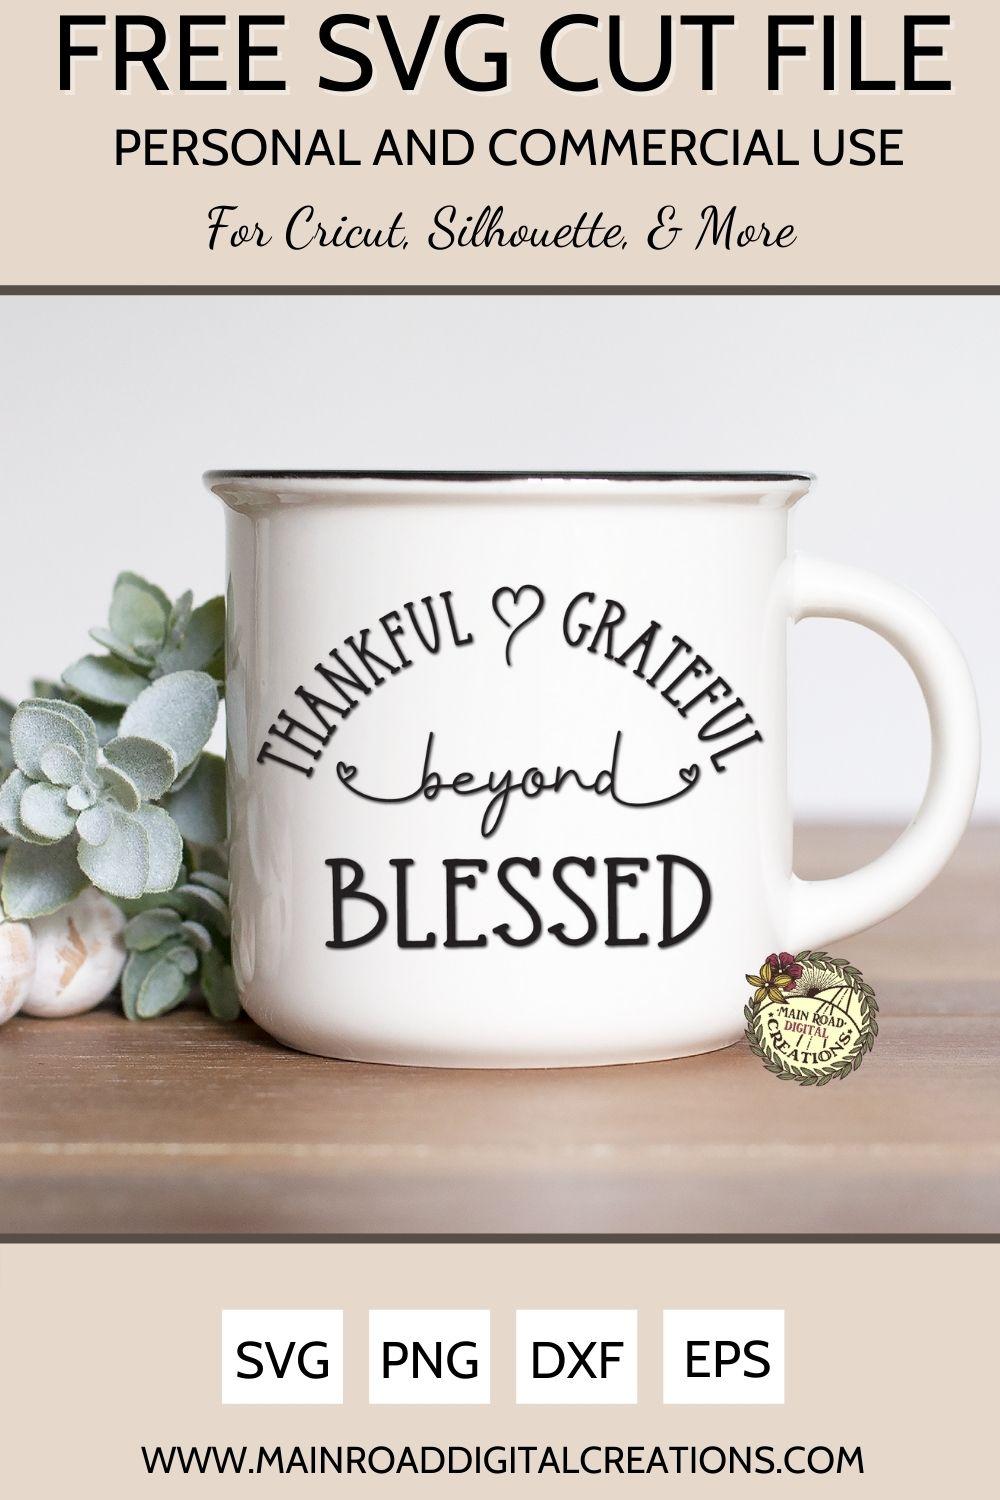 Thankful Grateful beyond blessed free svg file, Thankful shirt design, Grateful SVG file. Blessed quotes for tshirts